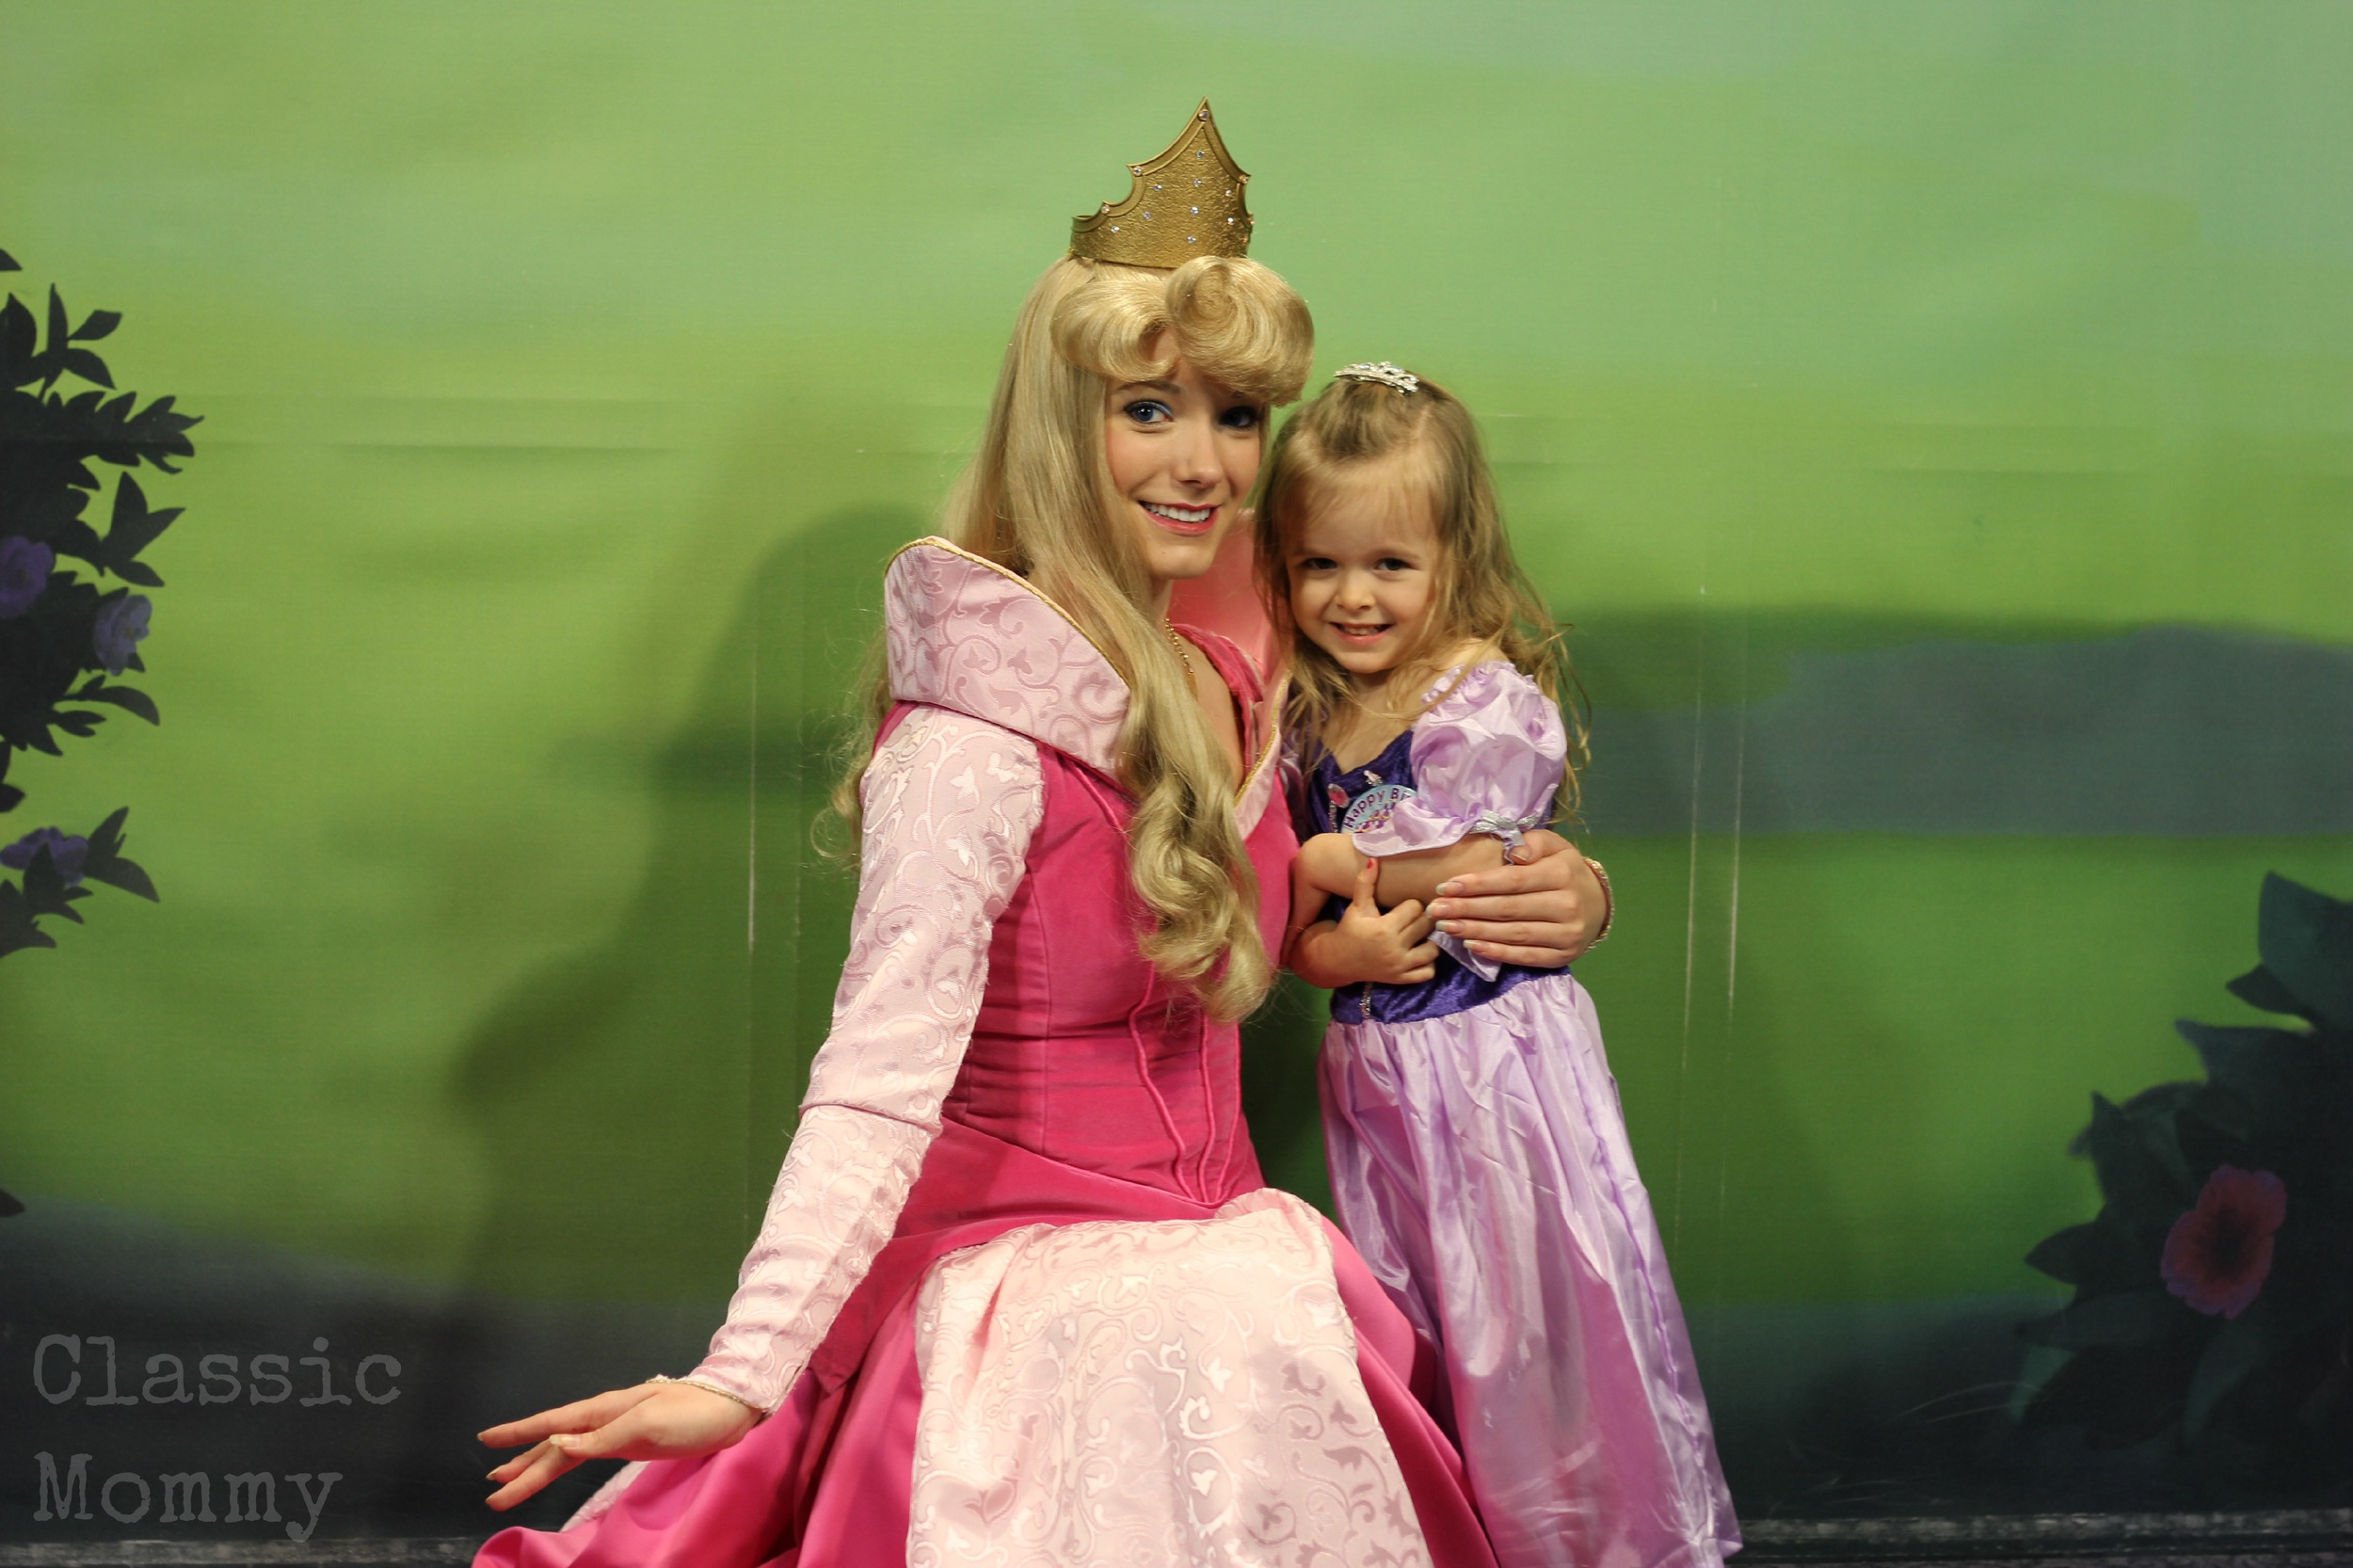 meet-disney-princess-aurora